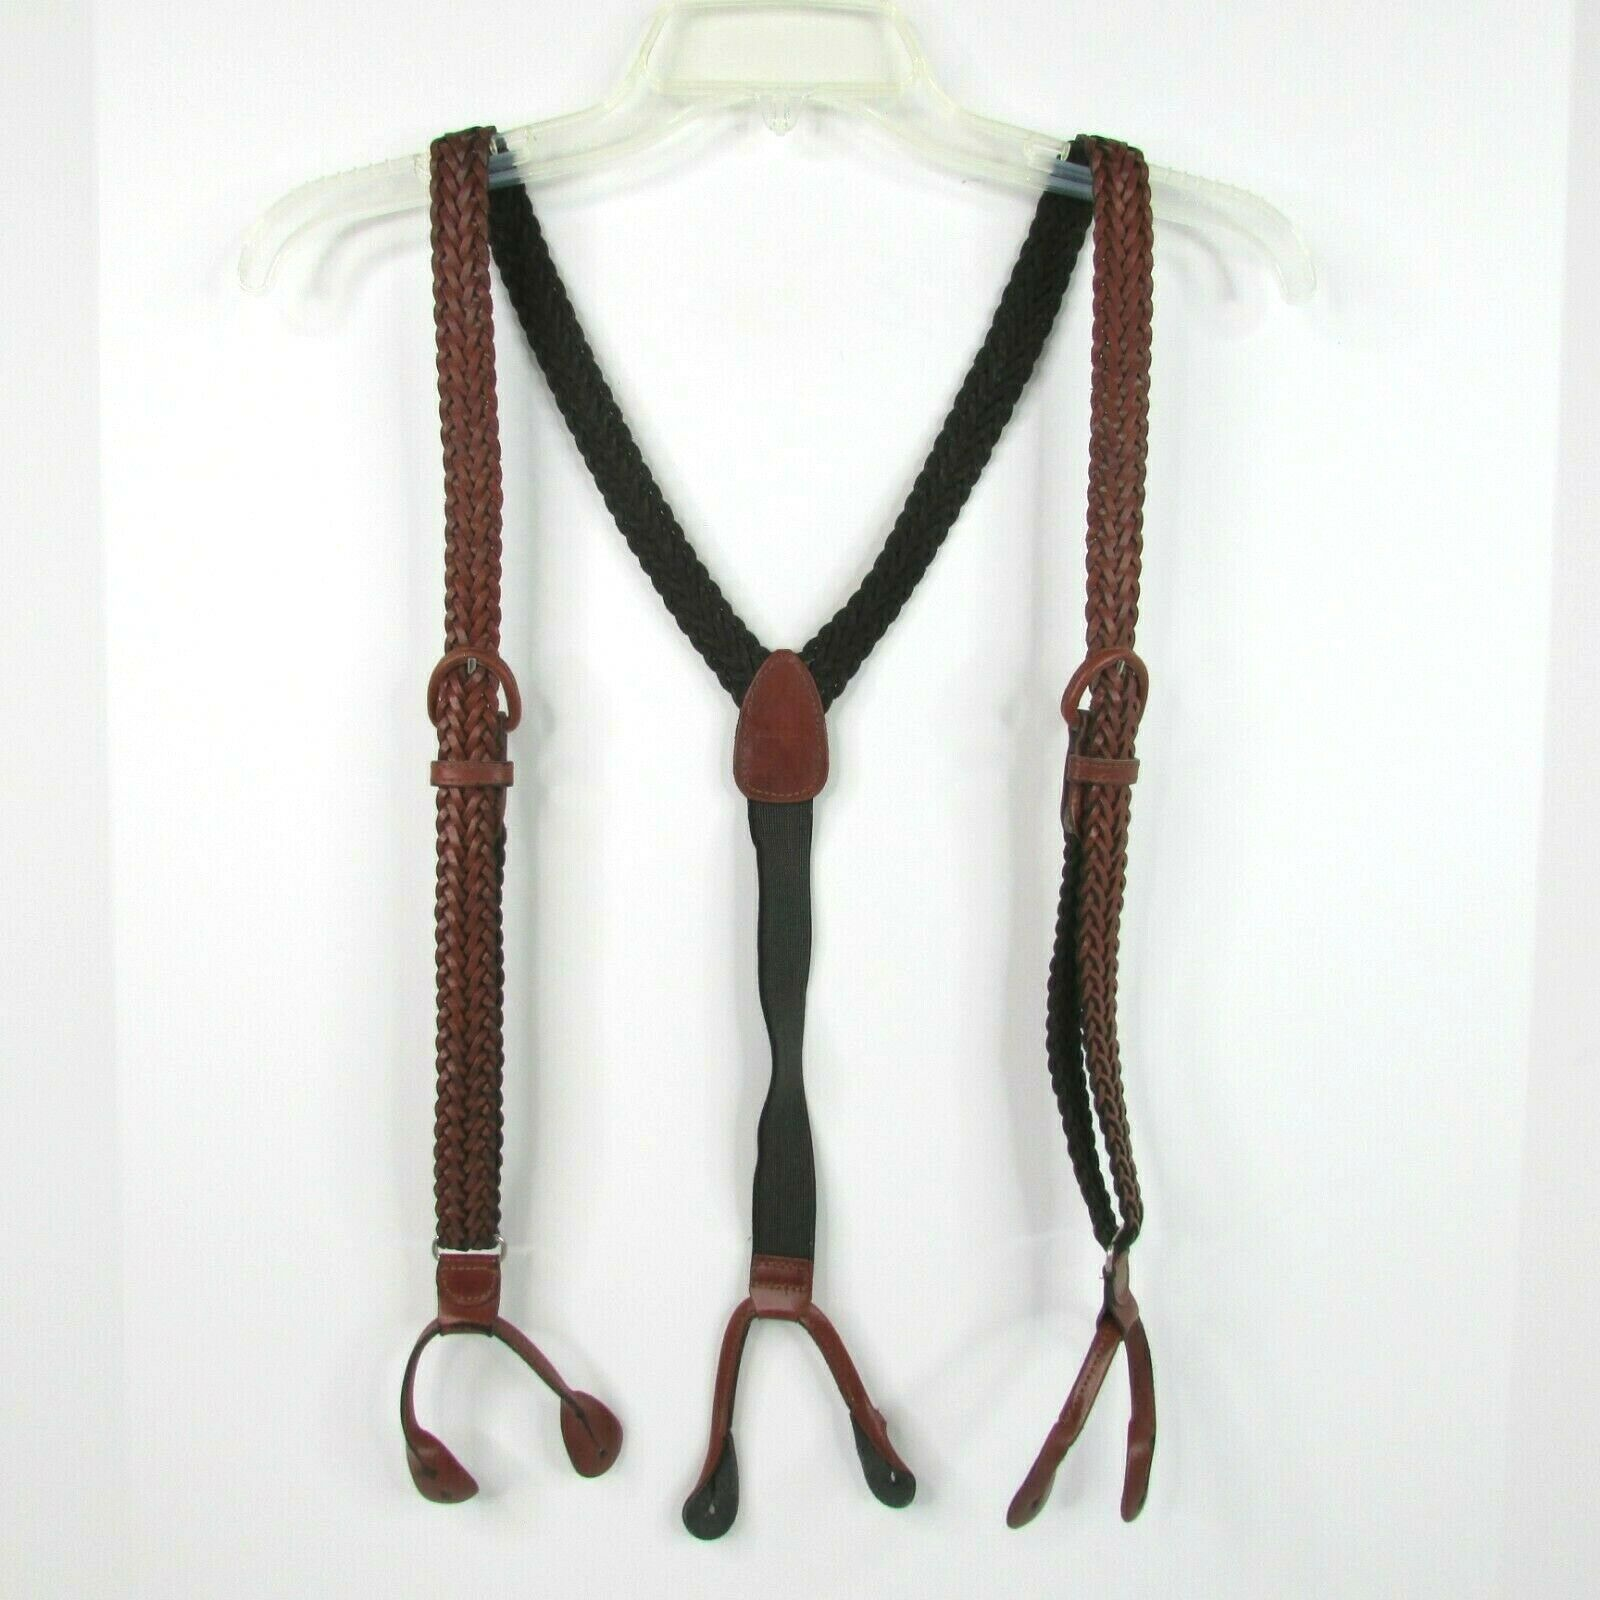 2 Braided Woven Leather Suspenders Brown Braces Adjustable Buckles Argentina